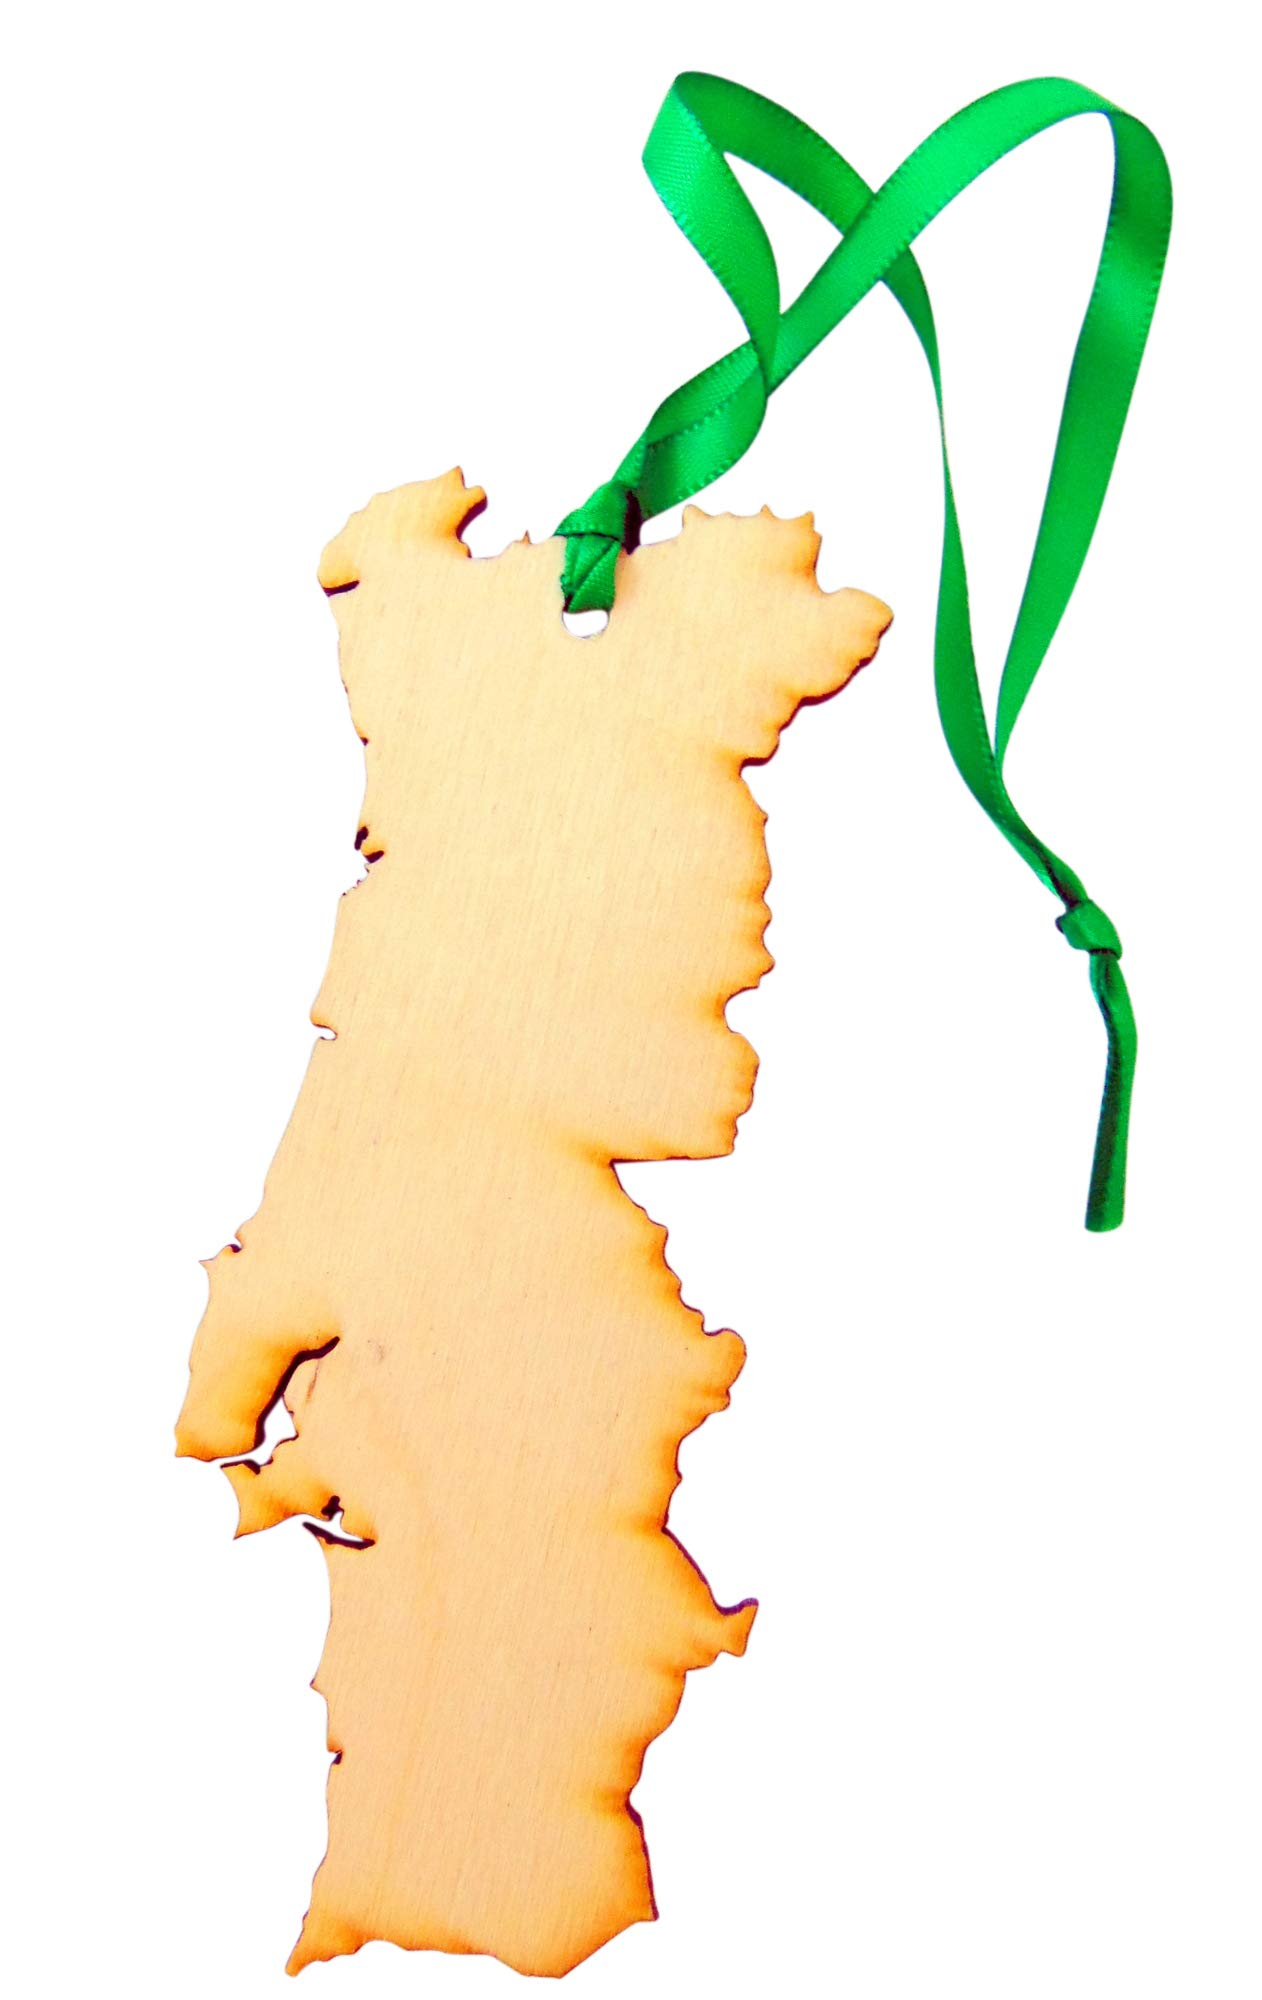 Portugal Christmas Wood Ornament Boxed Portuguese Map Wooden Decoration Handmade in The USA